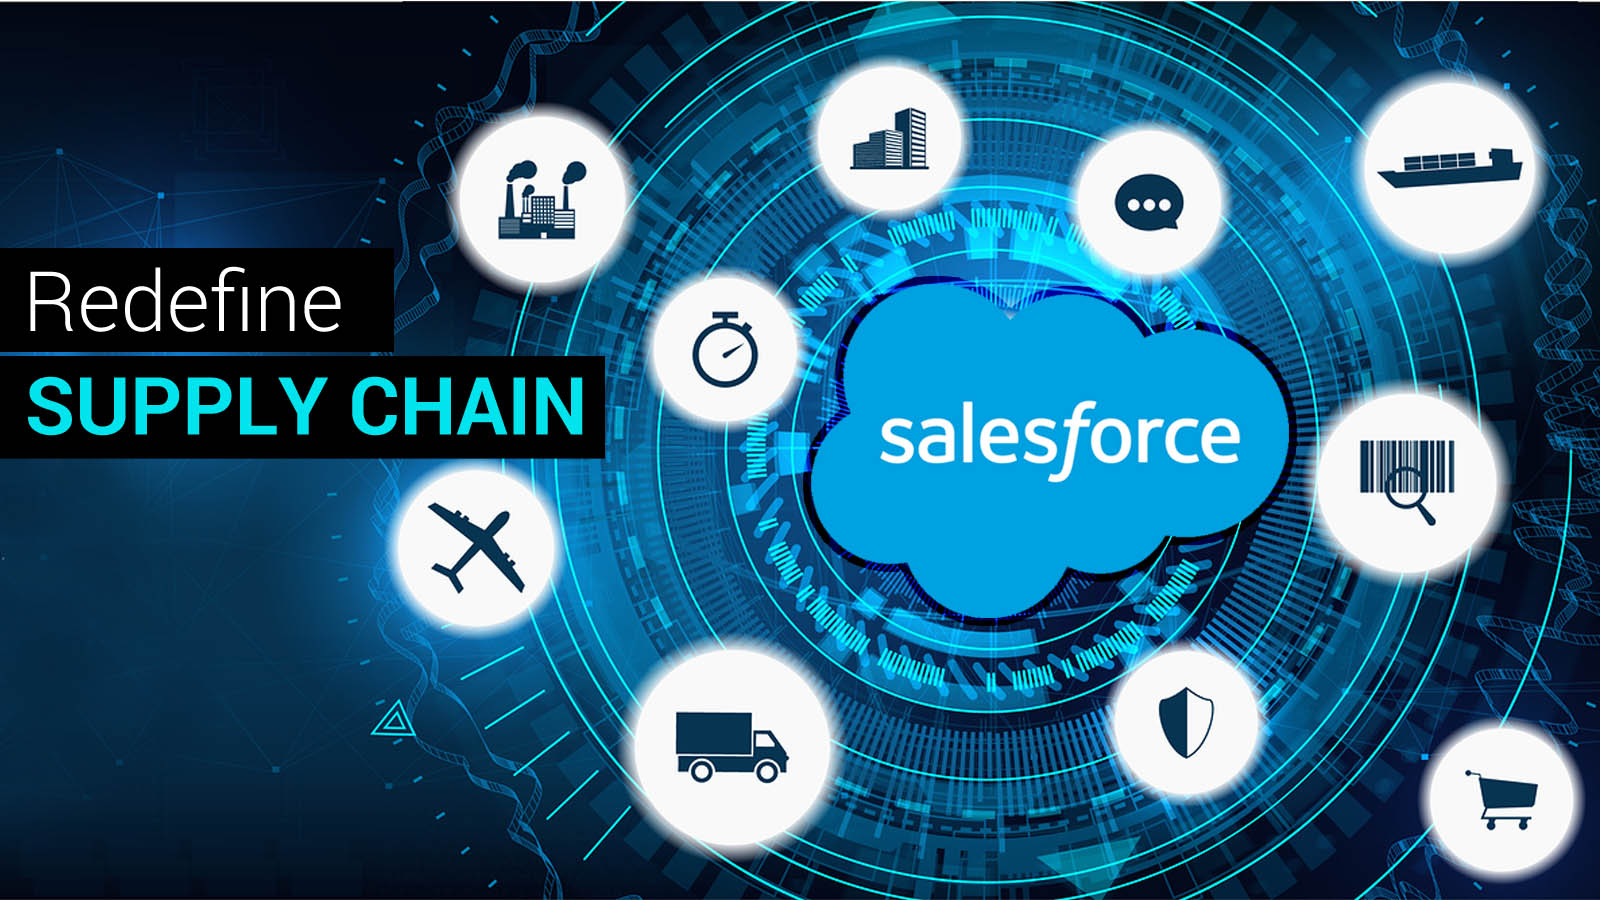 Salesforce For Efficient Supply Chain